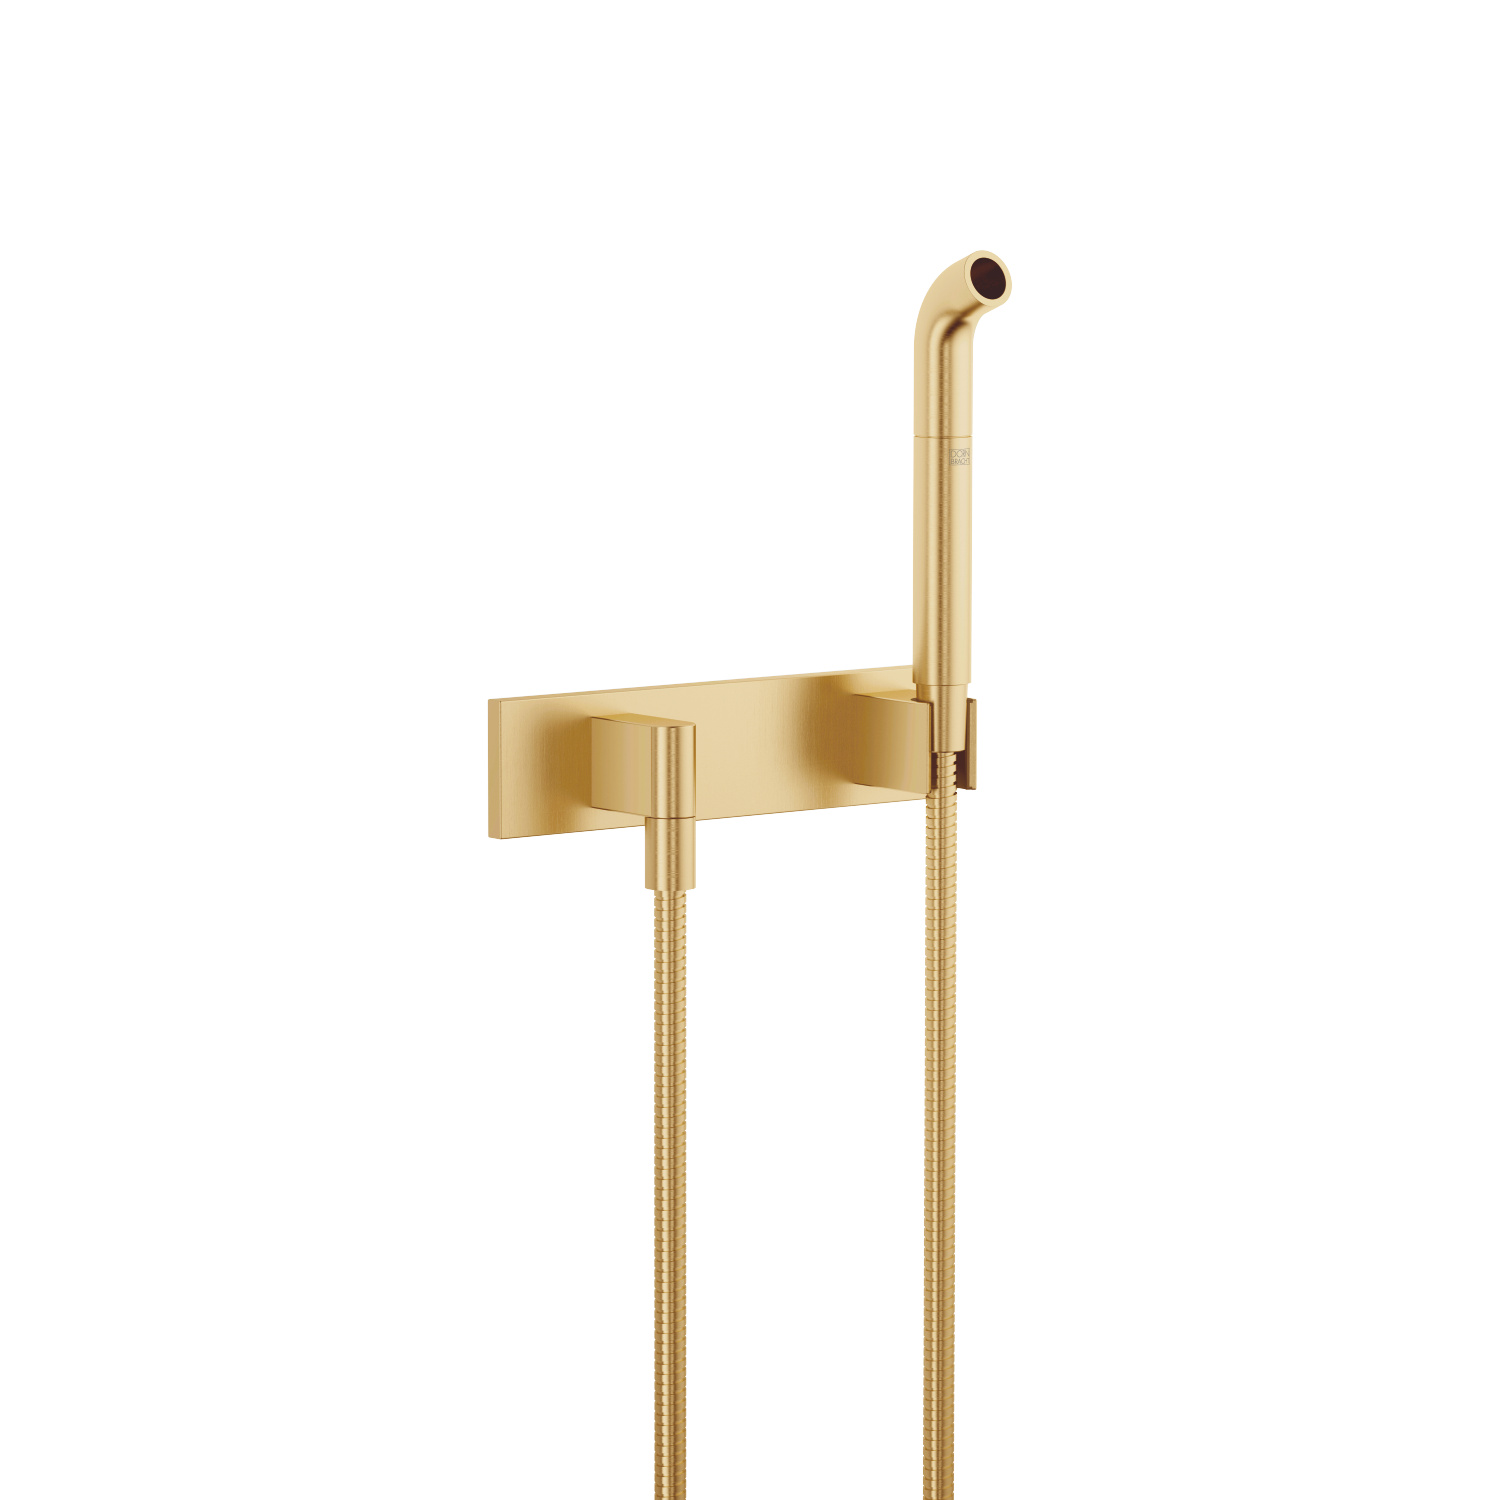 Affusion pipe with cover plate - Brushed Durabrass